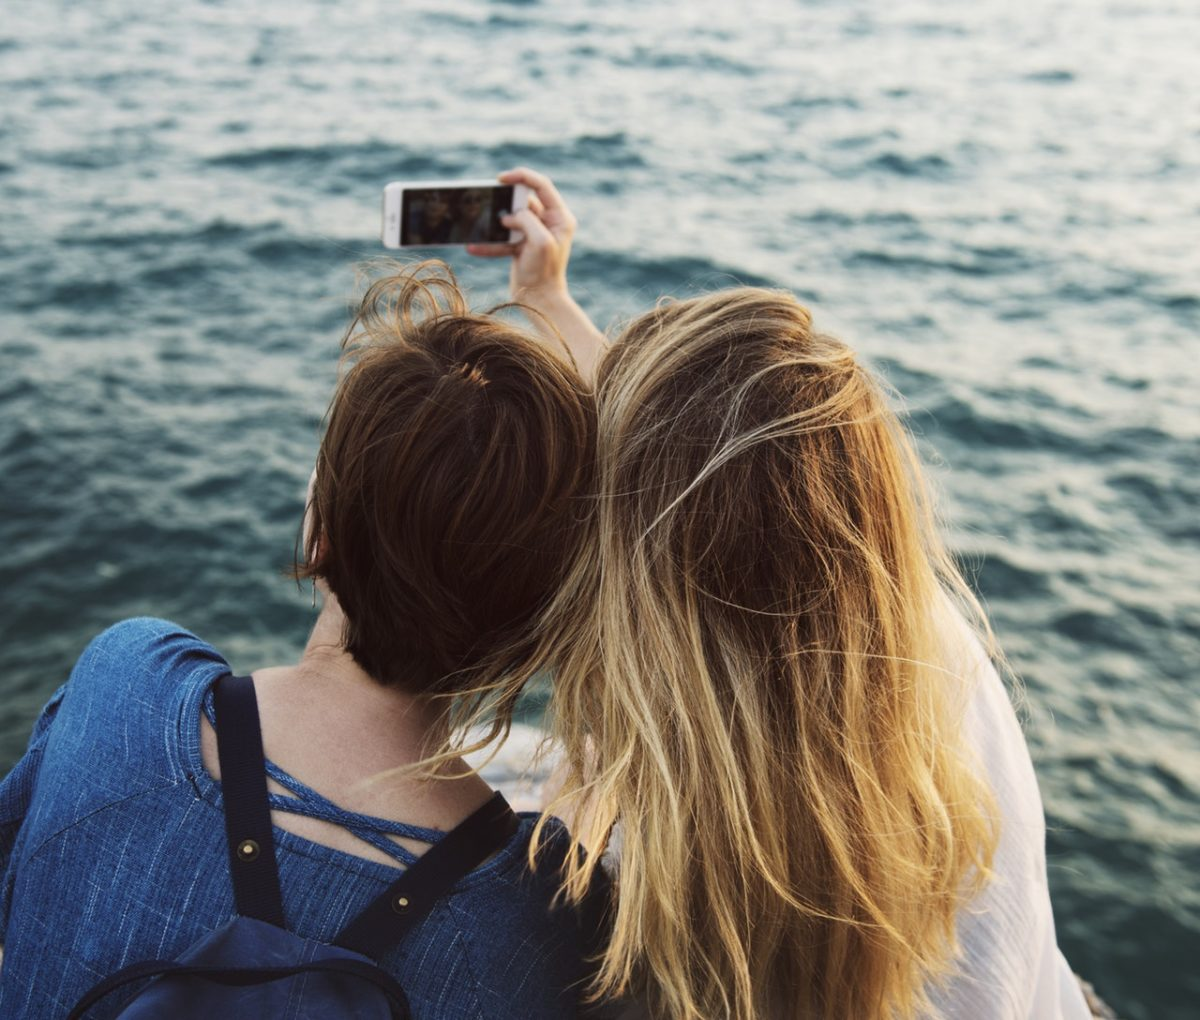 Photography ideas for International Day of Friendship